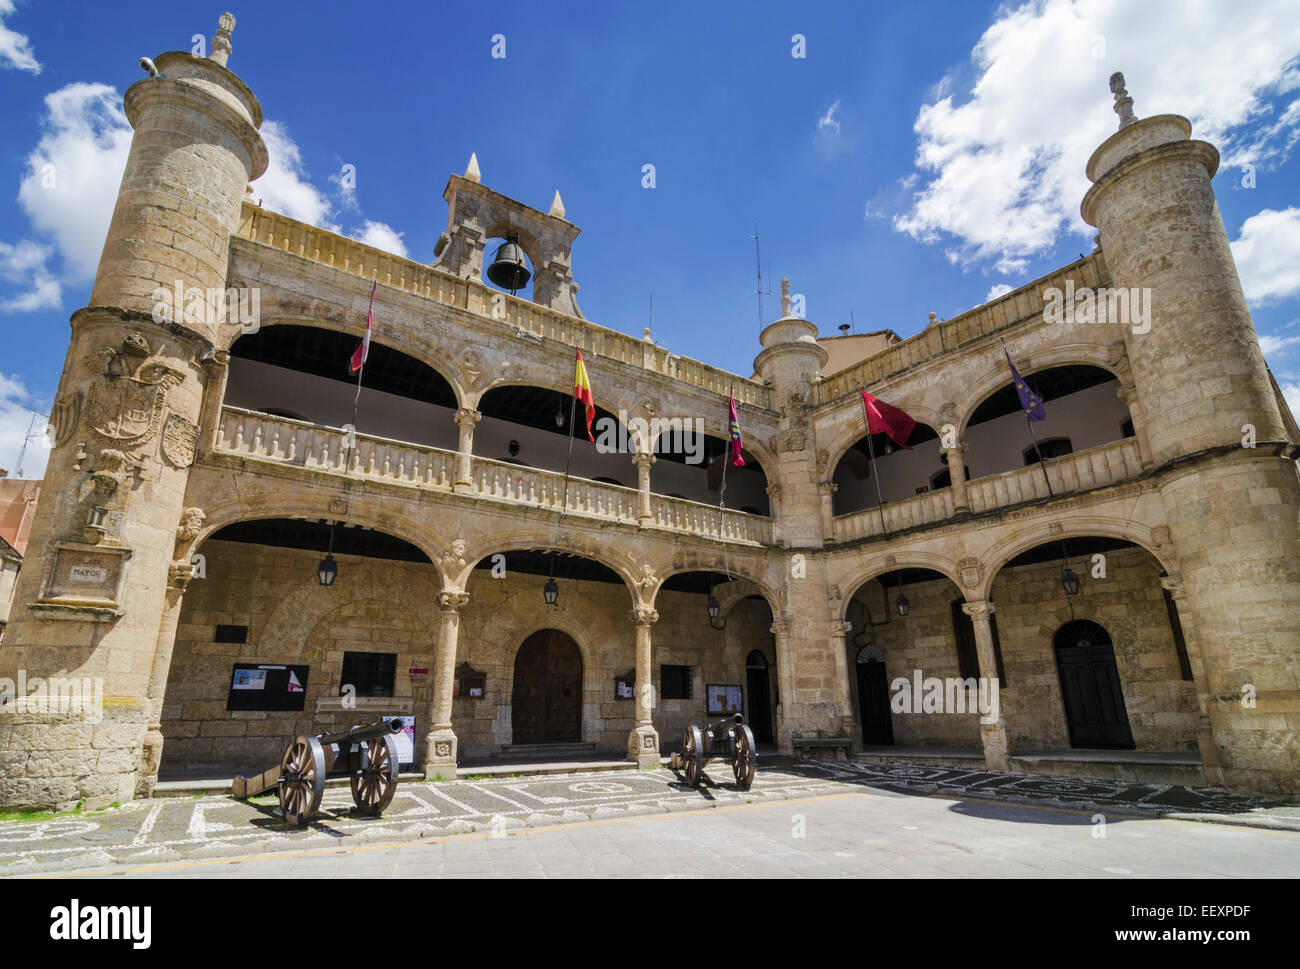 Facade of the16th Century Town Hall of Ciudad Rodrigo, Spain - Stock Image